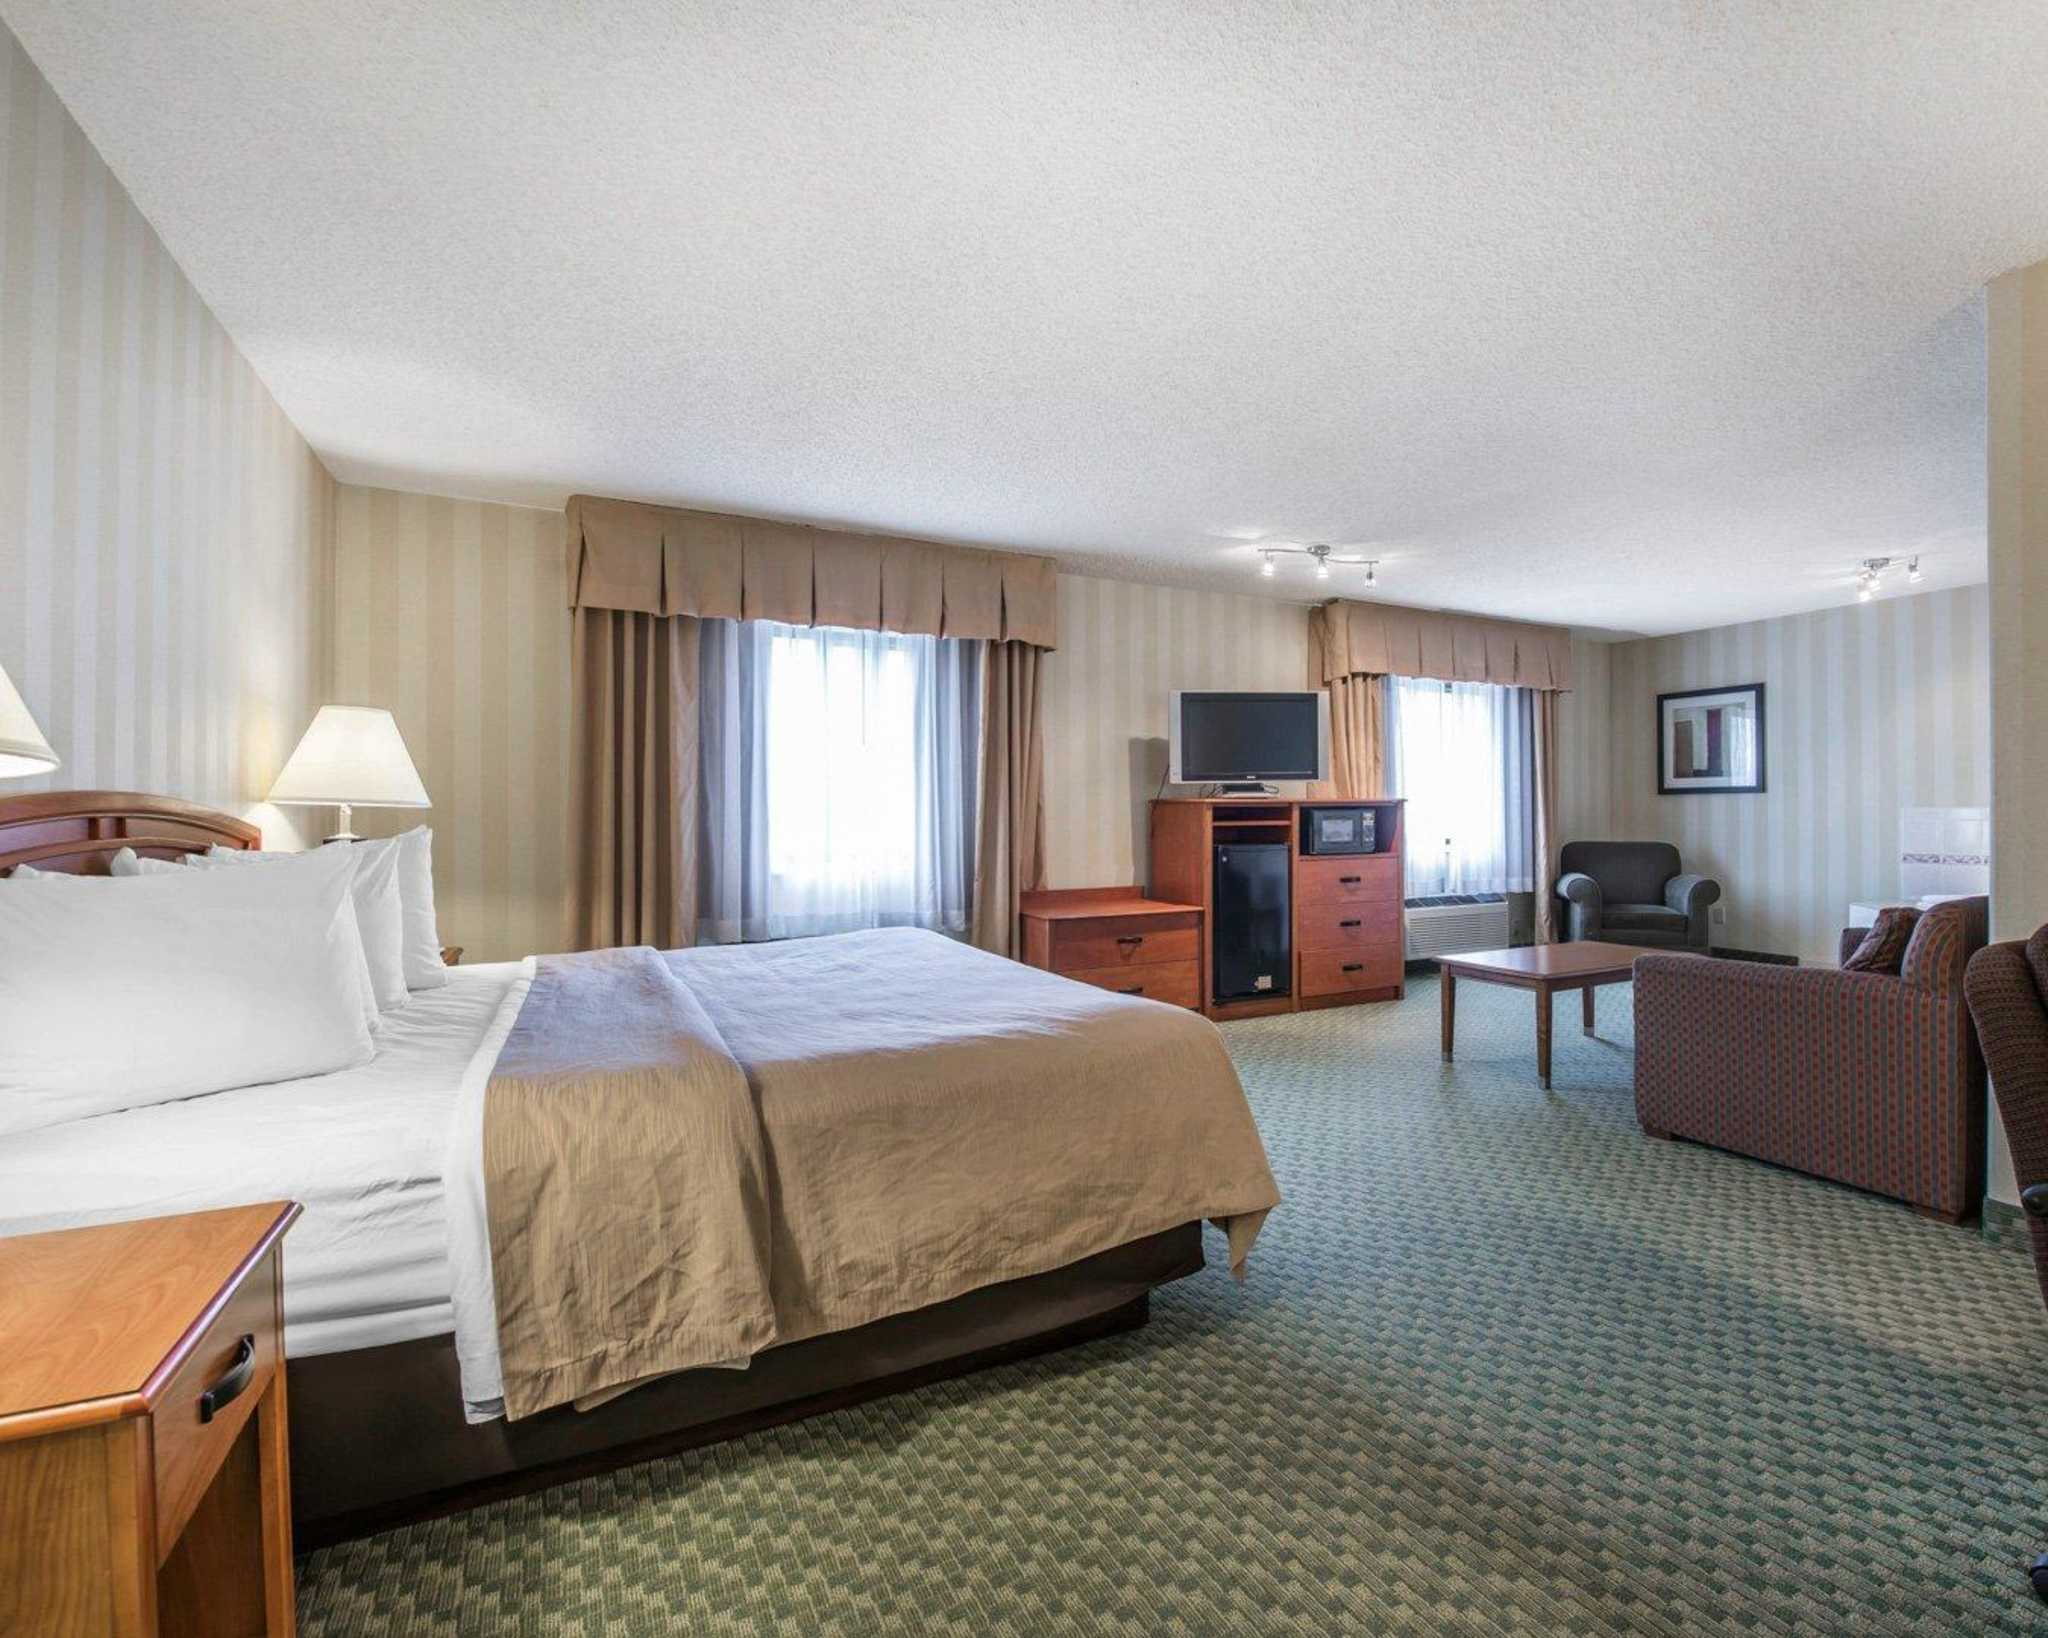 Quality Inn Colorado Springs Airport image 23